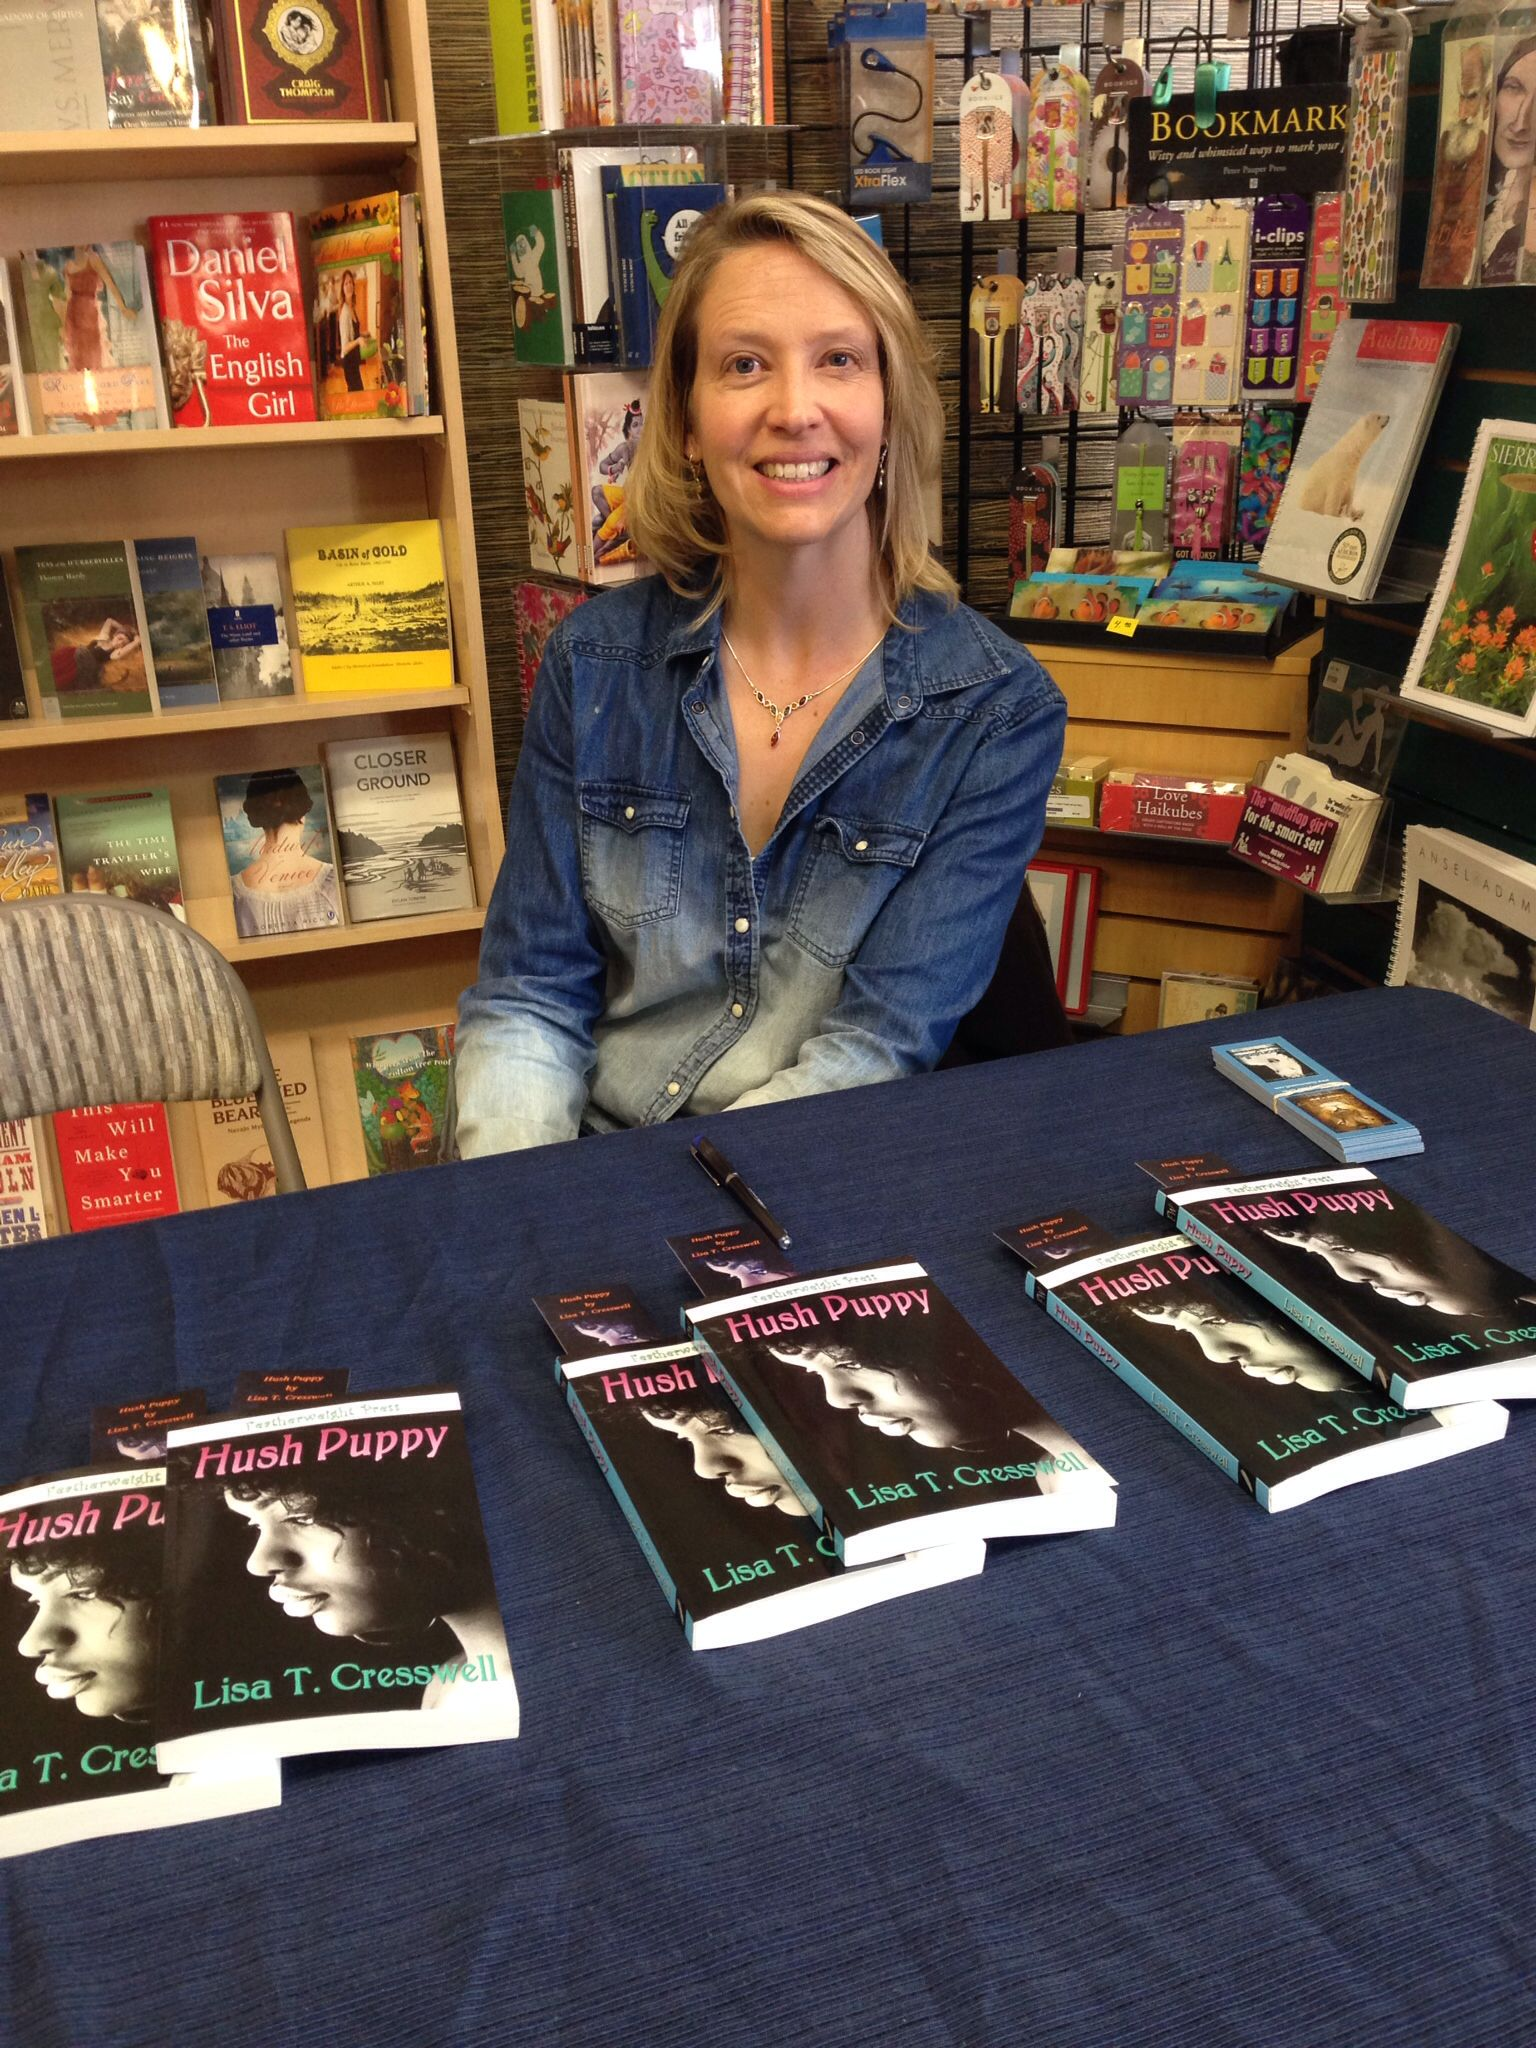 Book signing for Hush Puppy by Lisa T. Cresswell Hush